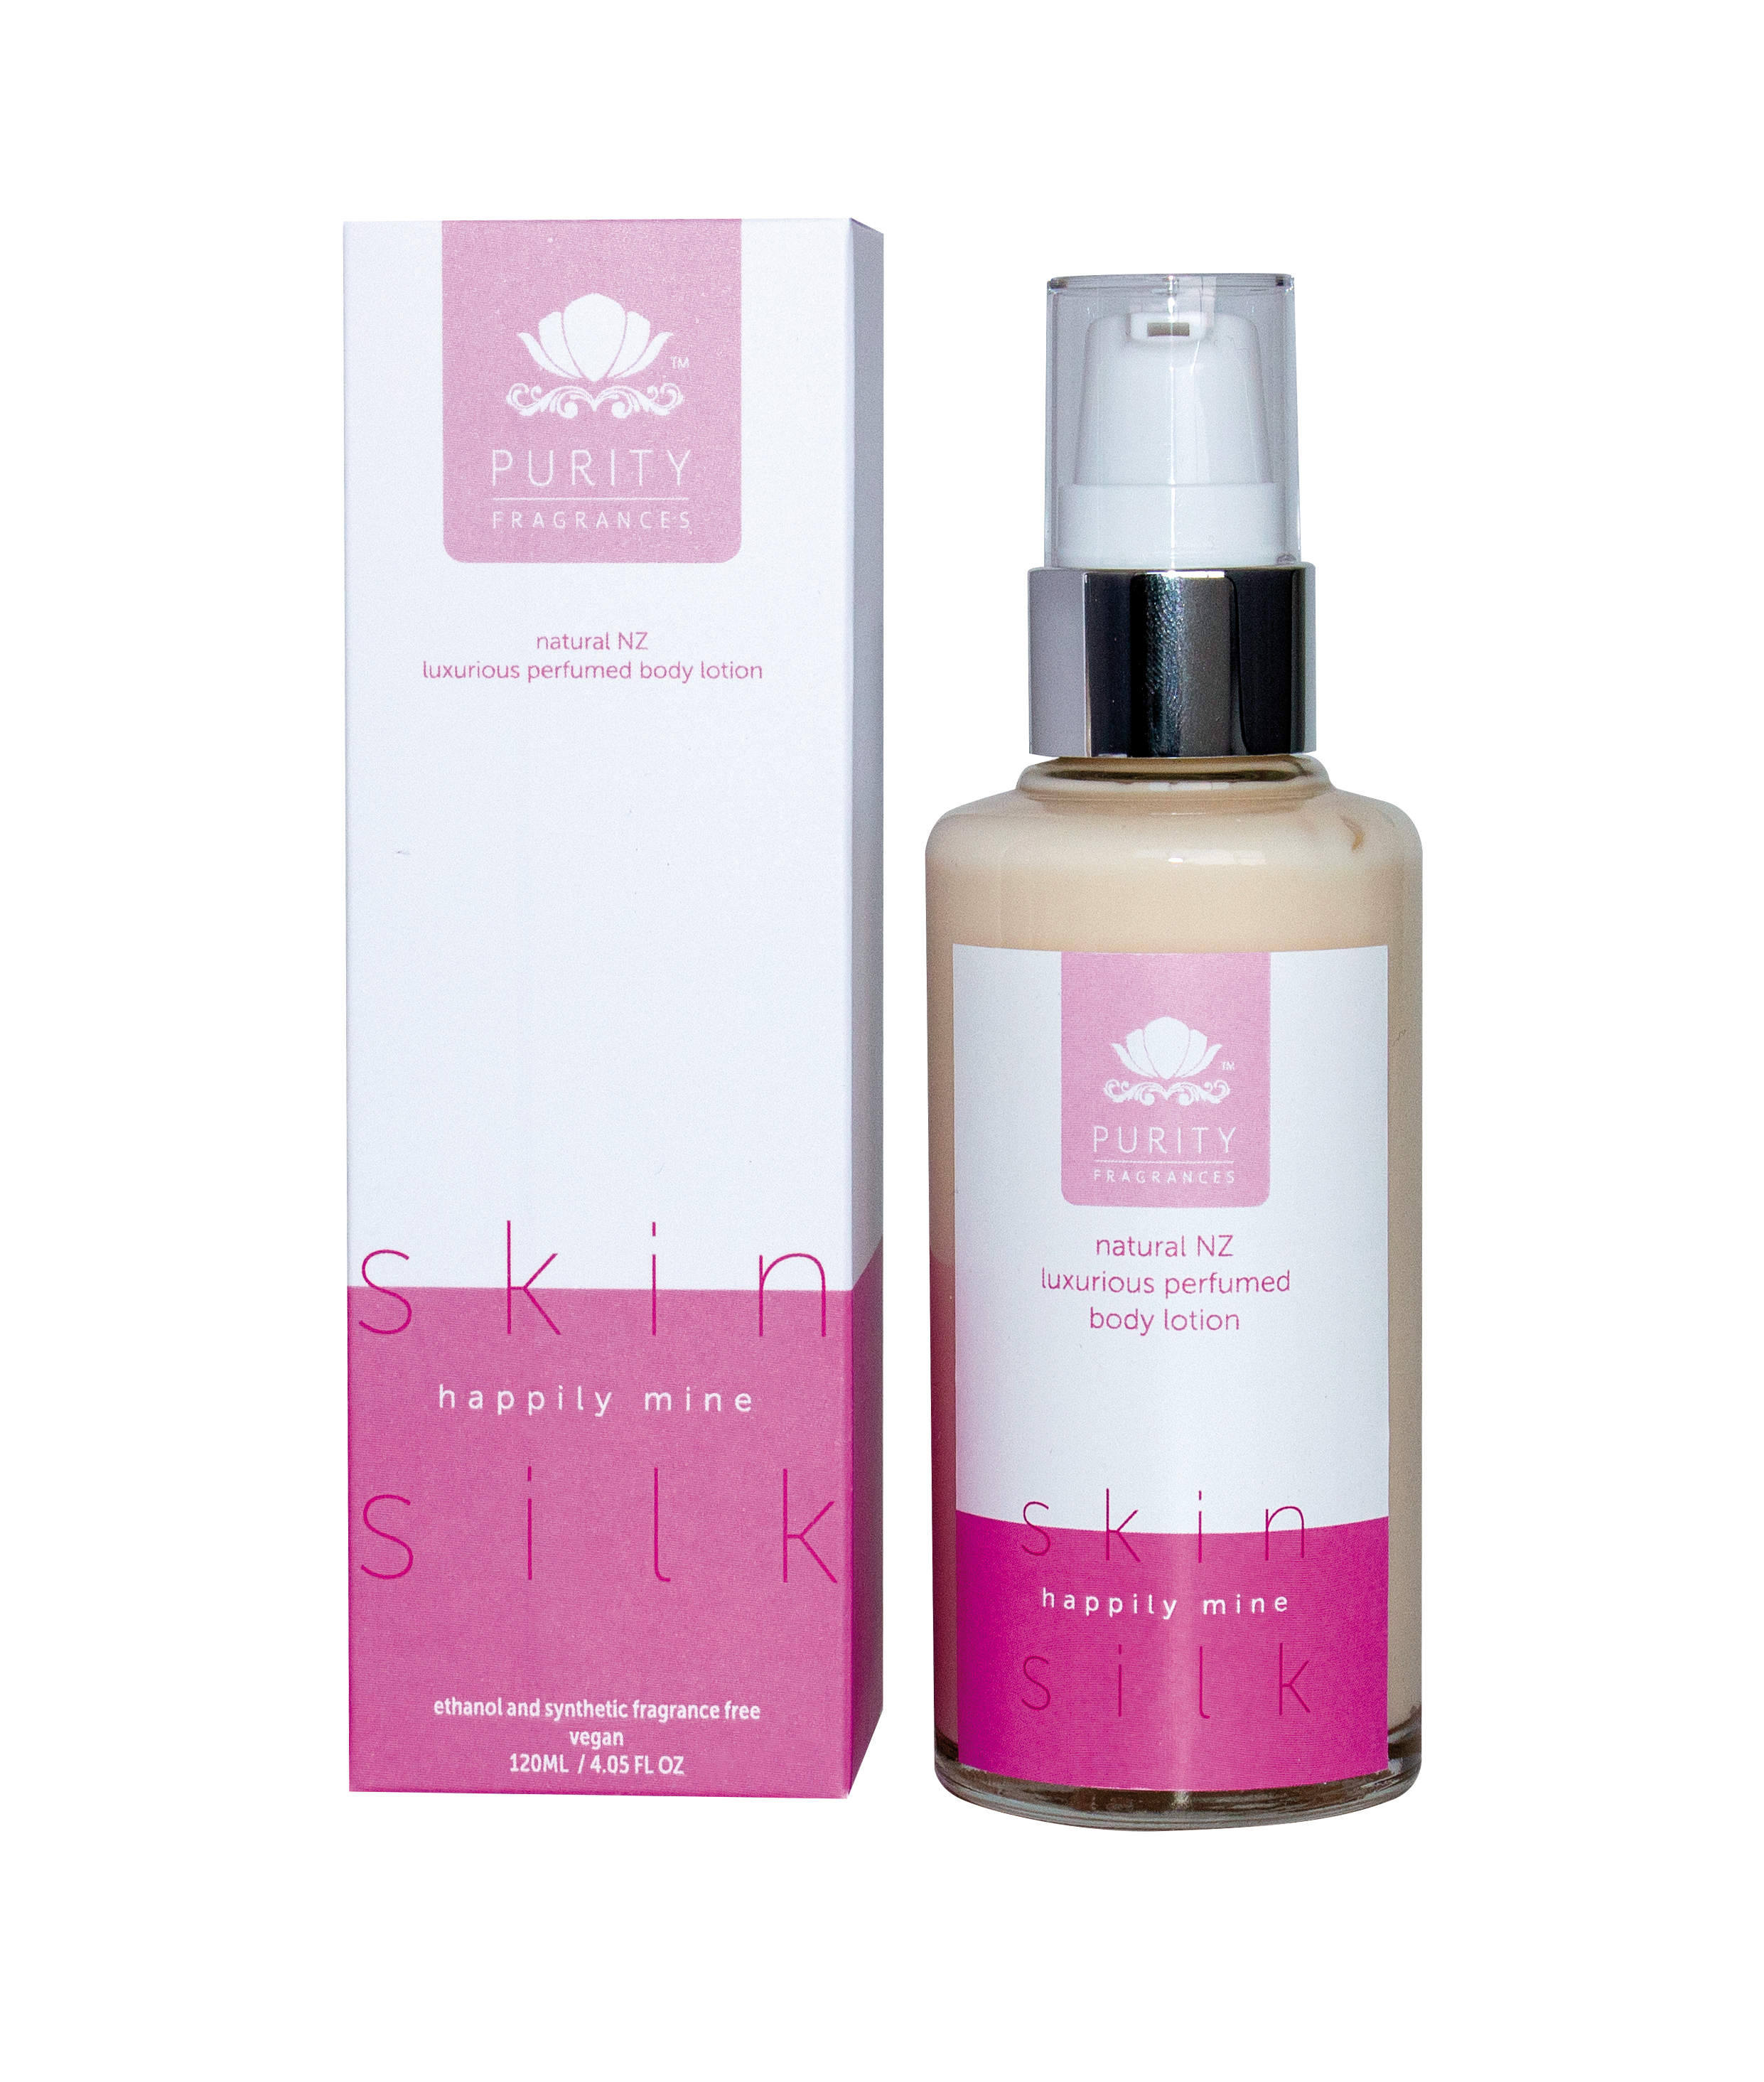 Made in NZ, Purity Fragrances Skin Silks range contain essential oils, aloe vera leaf extract, pomegranate extract, sweet almond, jojoba seed and sesame seed oils to hydrate and nourish the skin, while leaving a long-lasting scent.  www.purityfragrances.co.nz